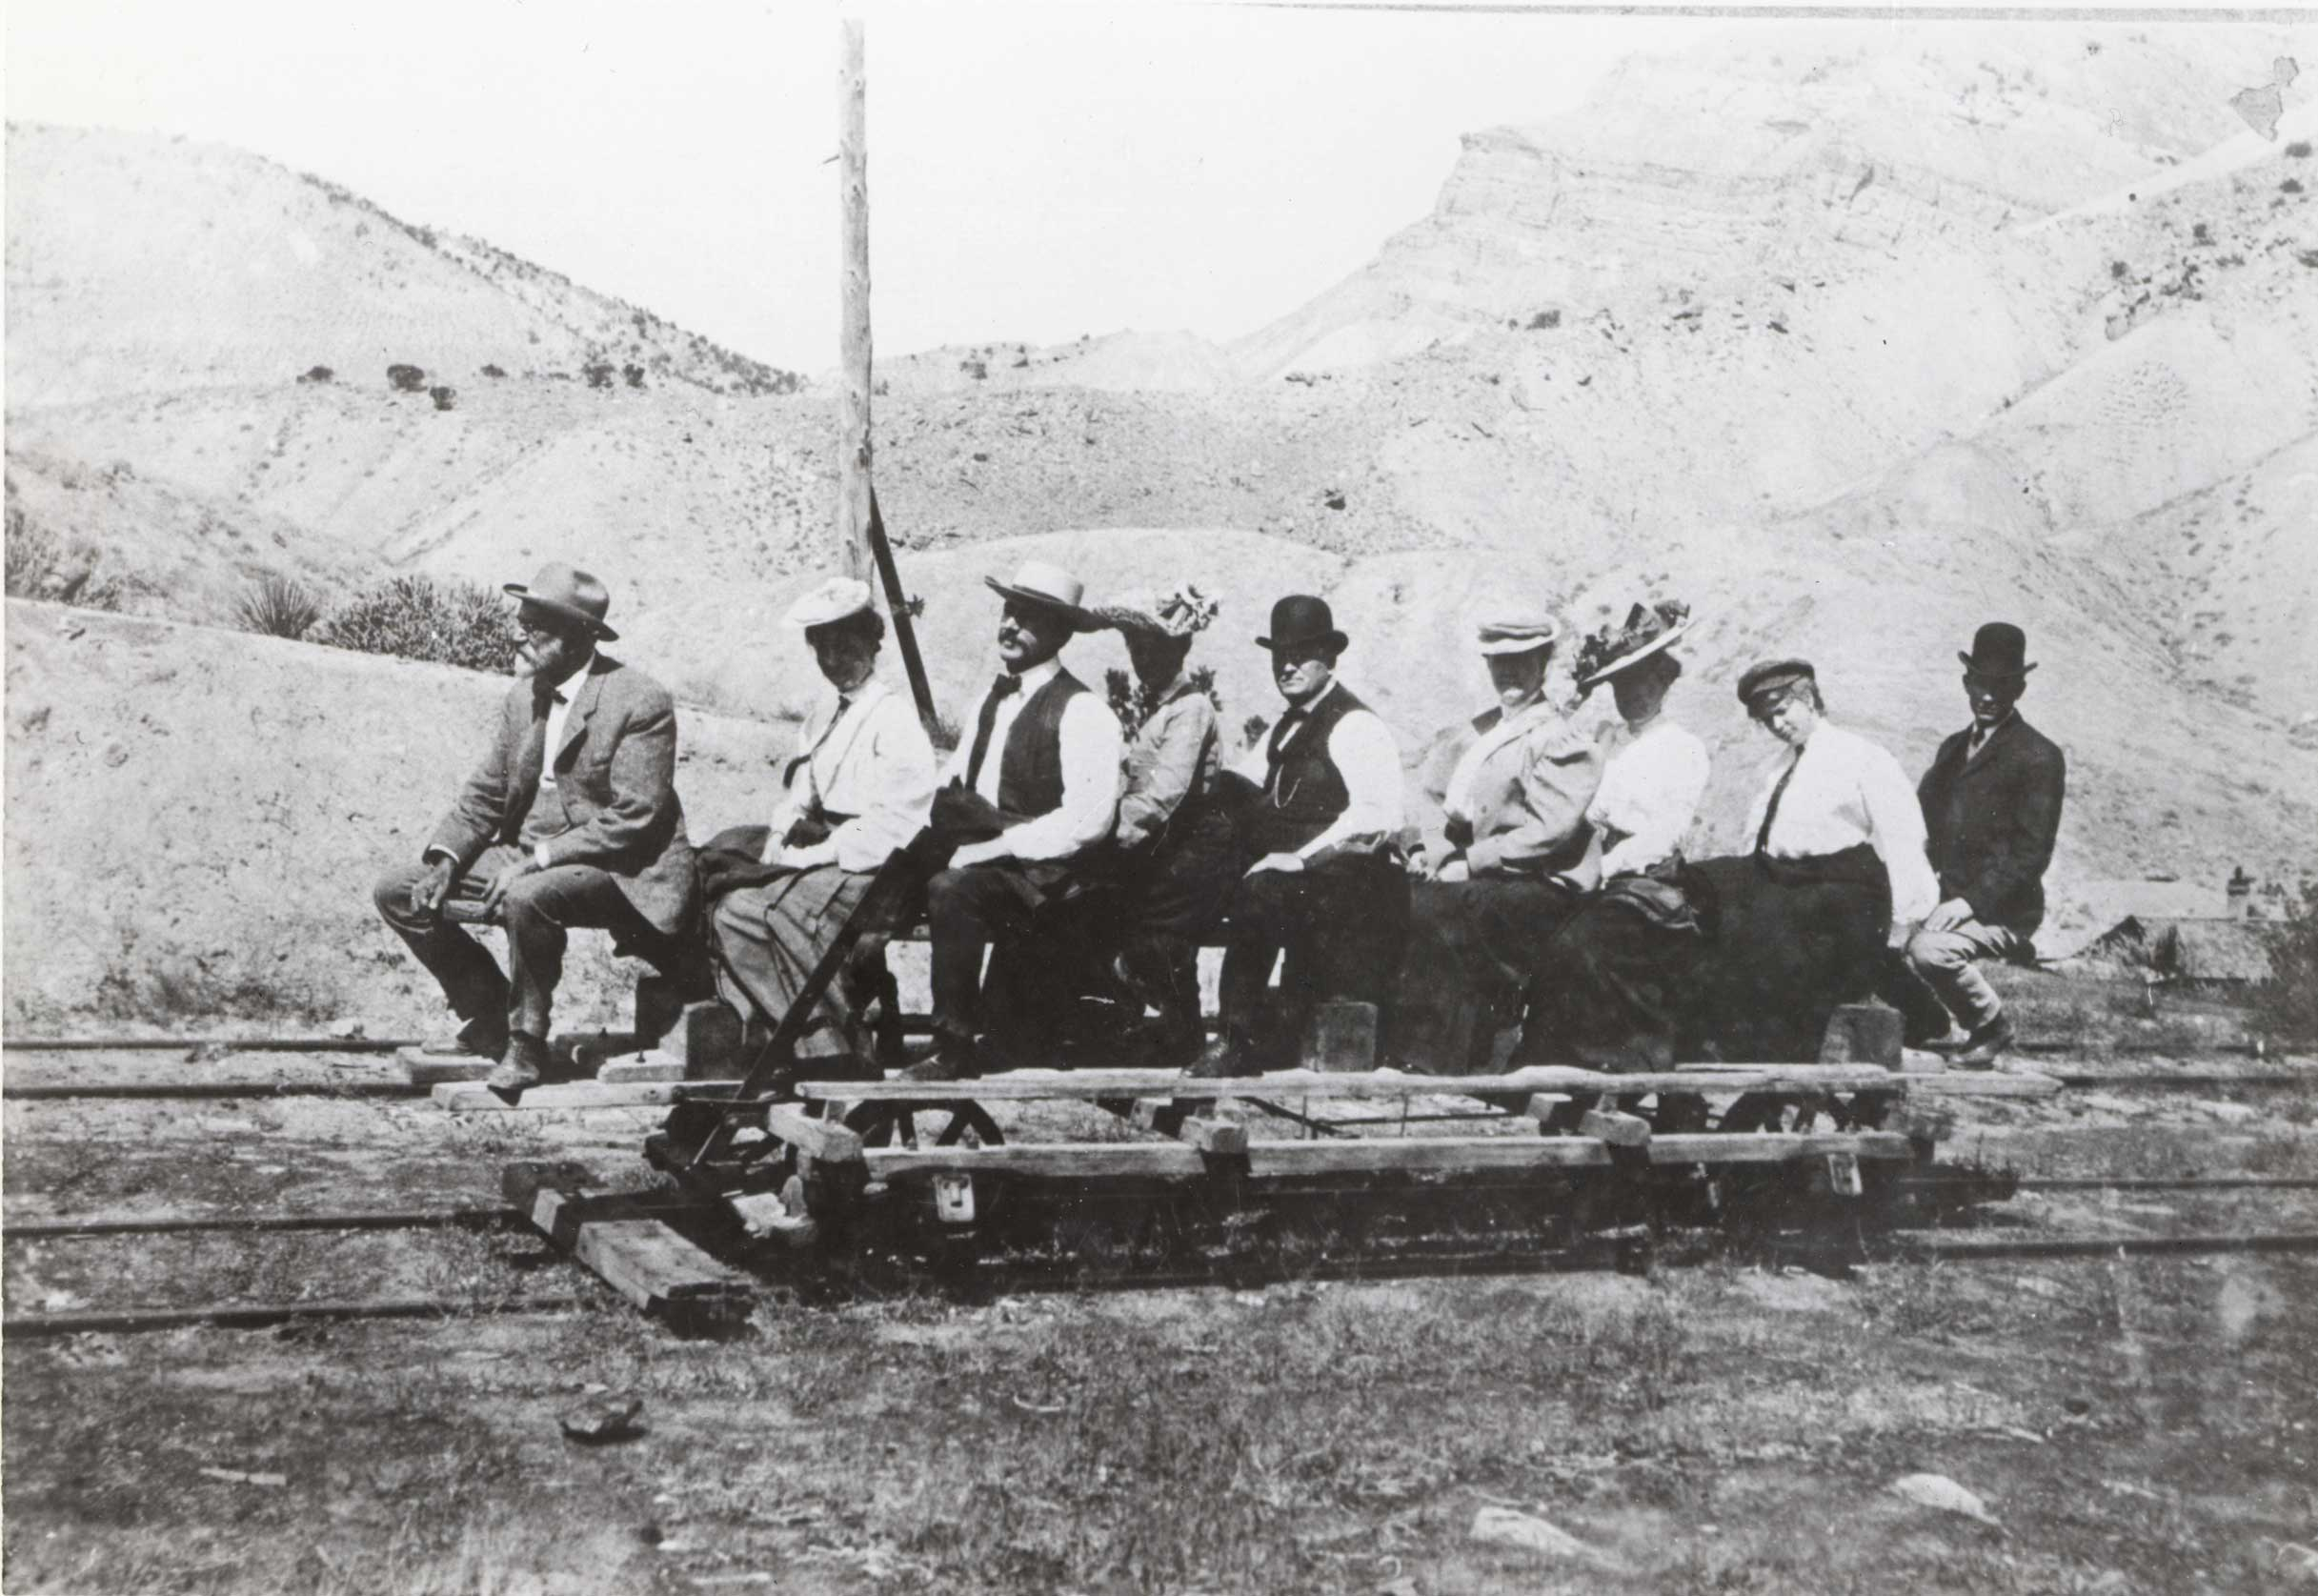 The Go Devil on the Little Book Cliff Railroad in 1903.  Photo # 1982.0000.0020, Lloyd Files Research Library.